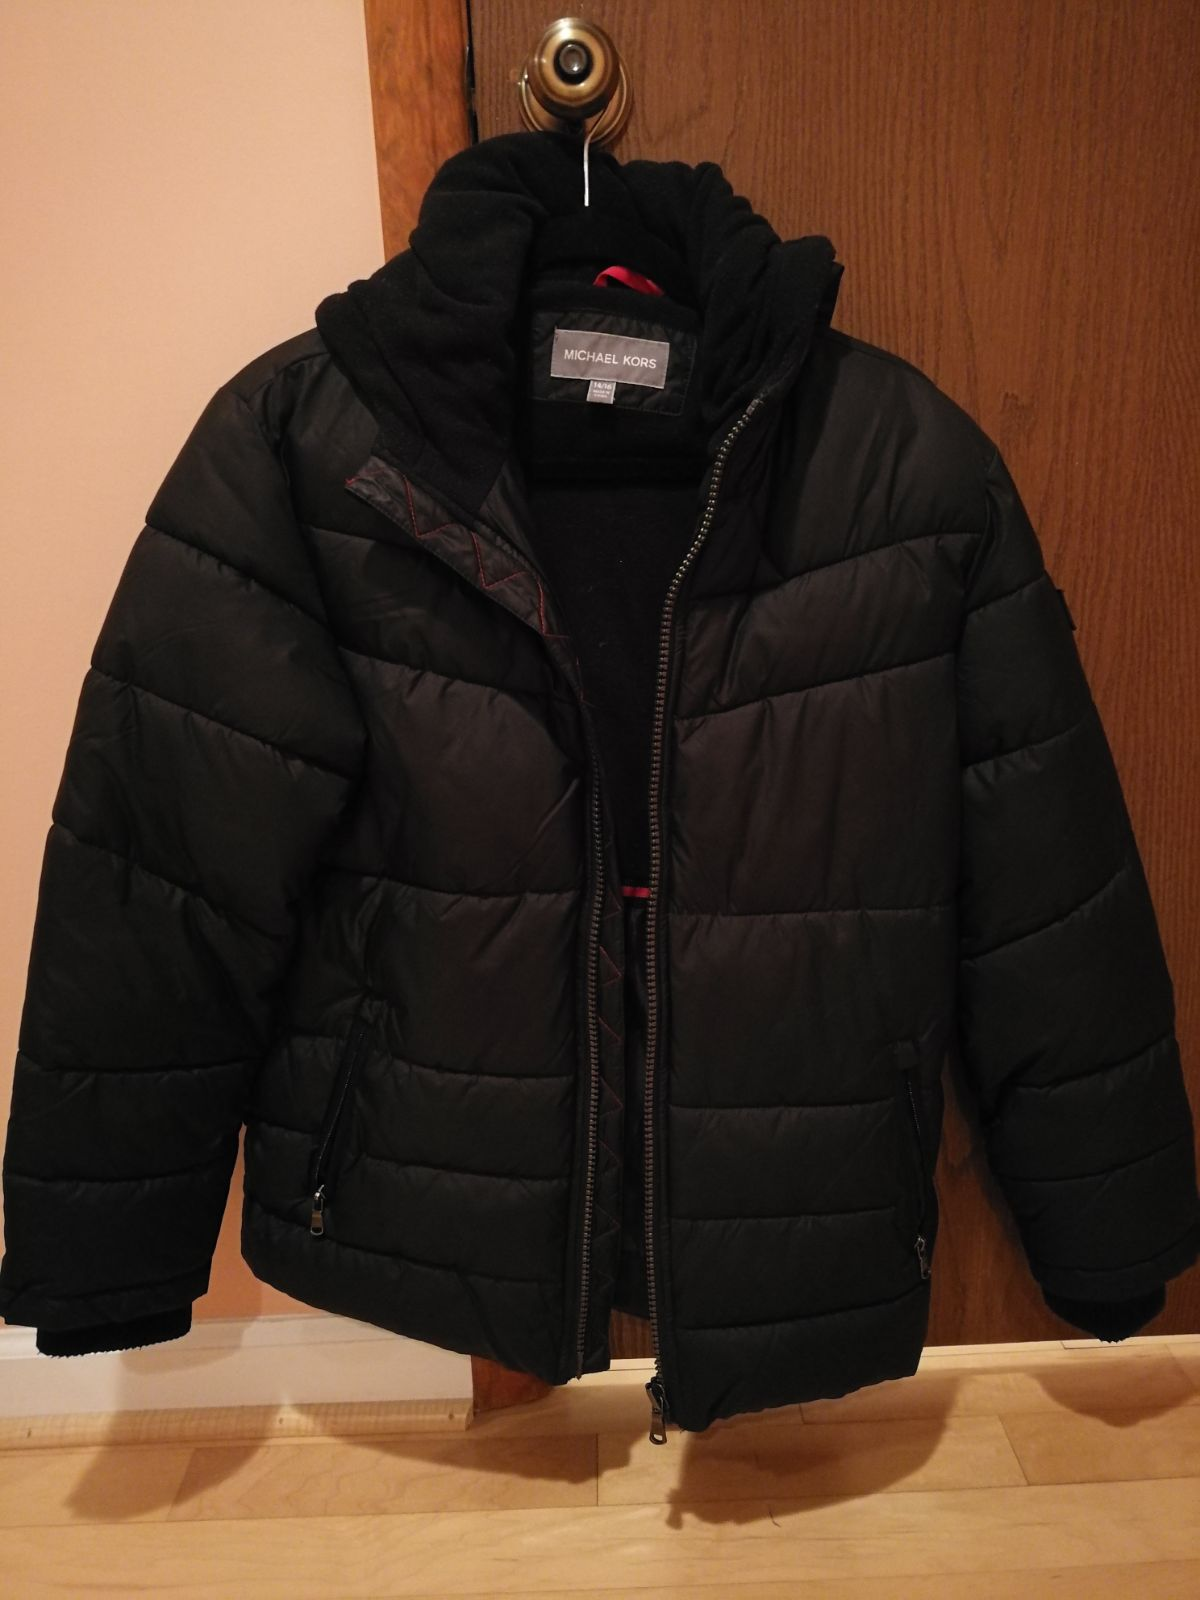 Michael Kors black boys winter jacket 14